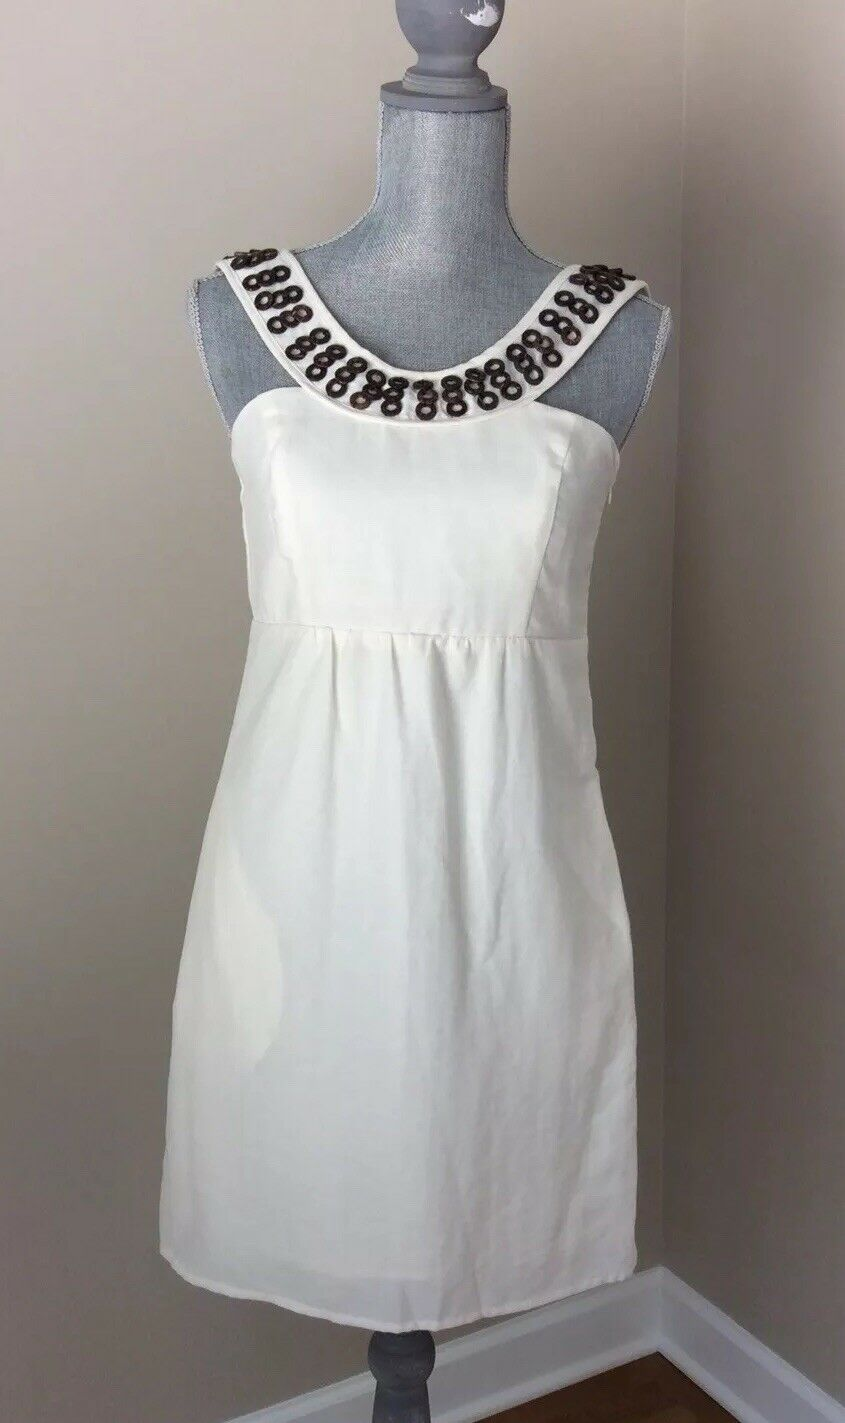 Women's Jade Melody Tam White Dress With Tortoise Shell Accents. Size Xs. NWT